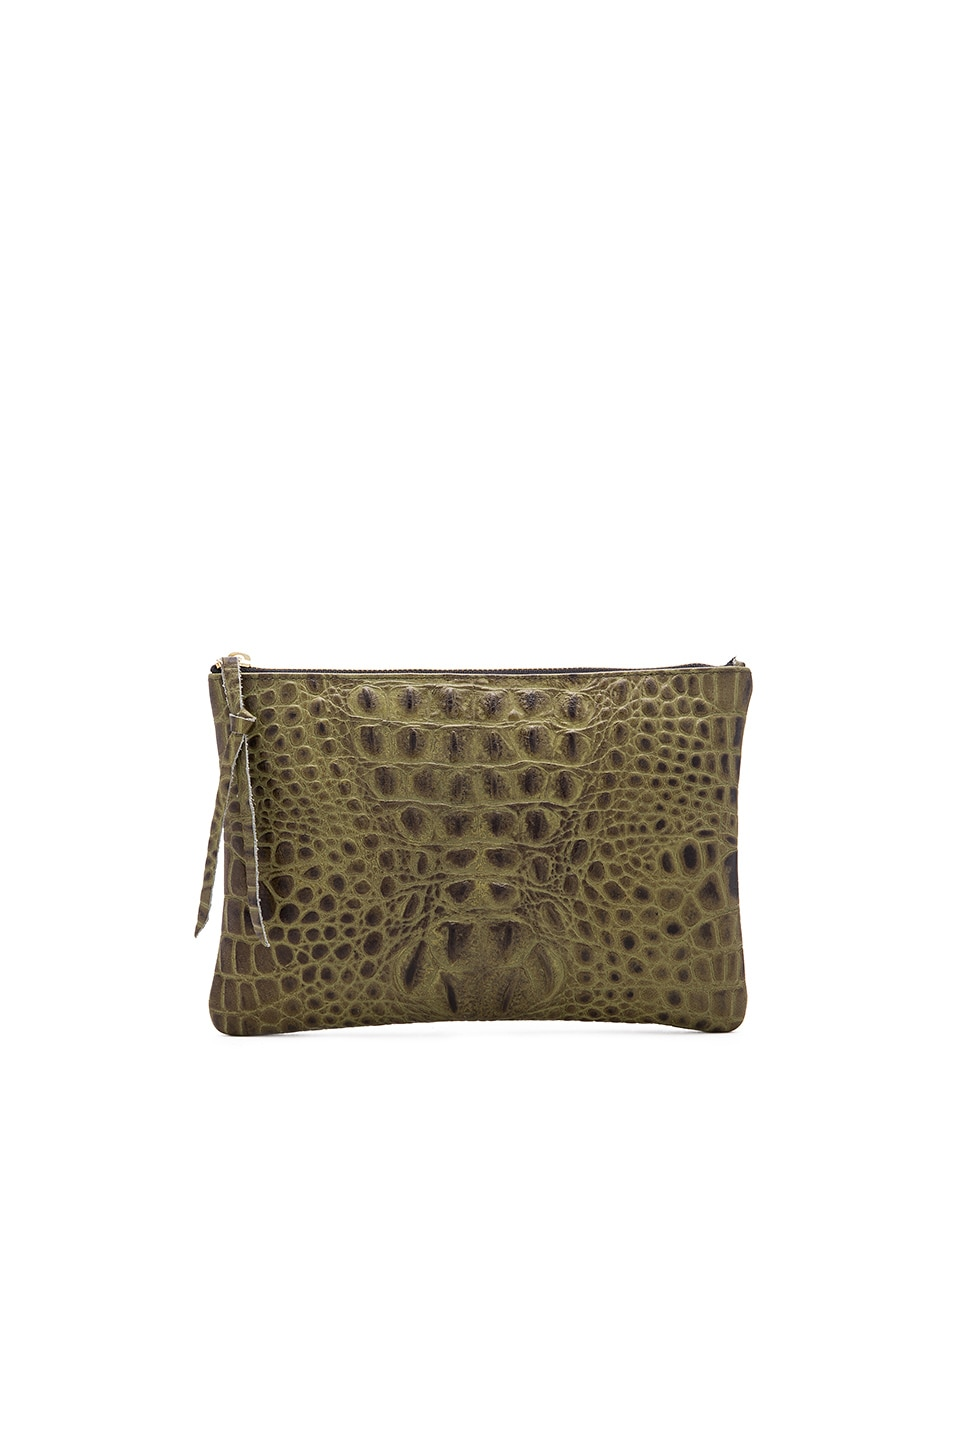 Oliveve Queenie Clutch in Olive